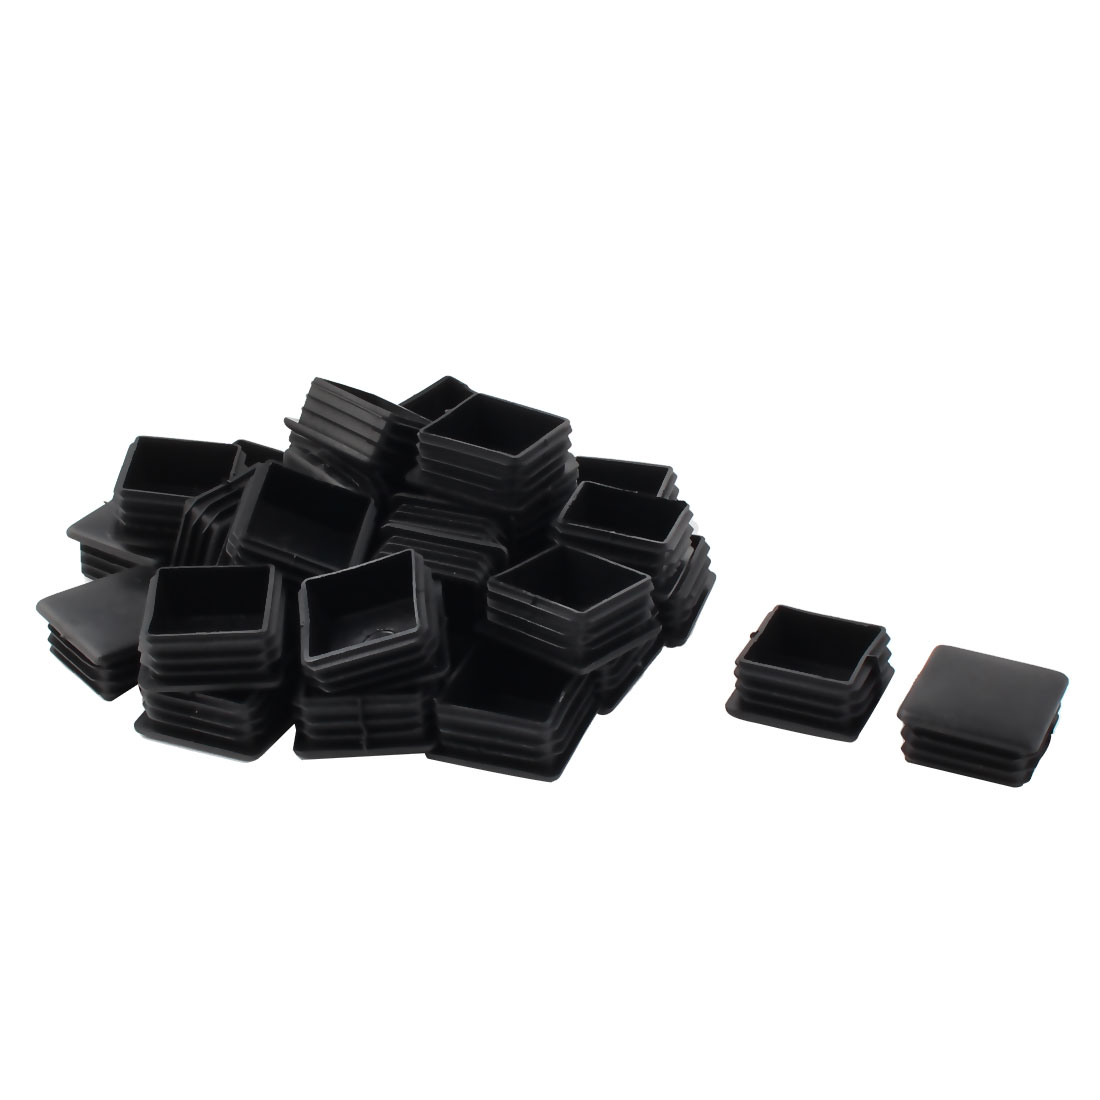 Furniture Chair Table Plastic Square Tube Insert End Cap Black 40mm x 40mm 30pcs